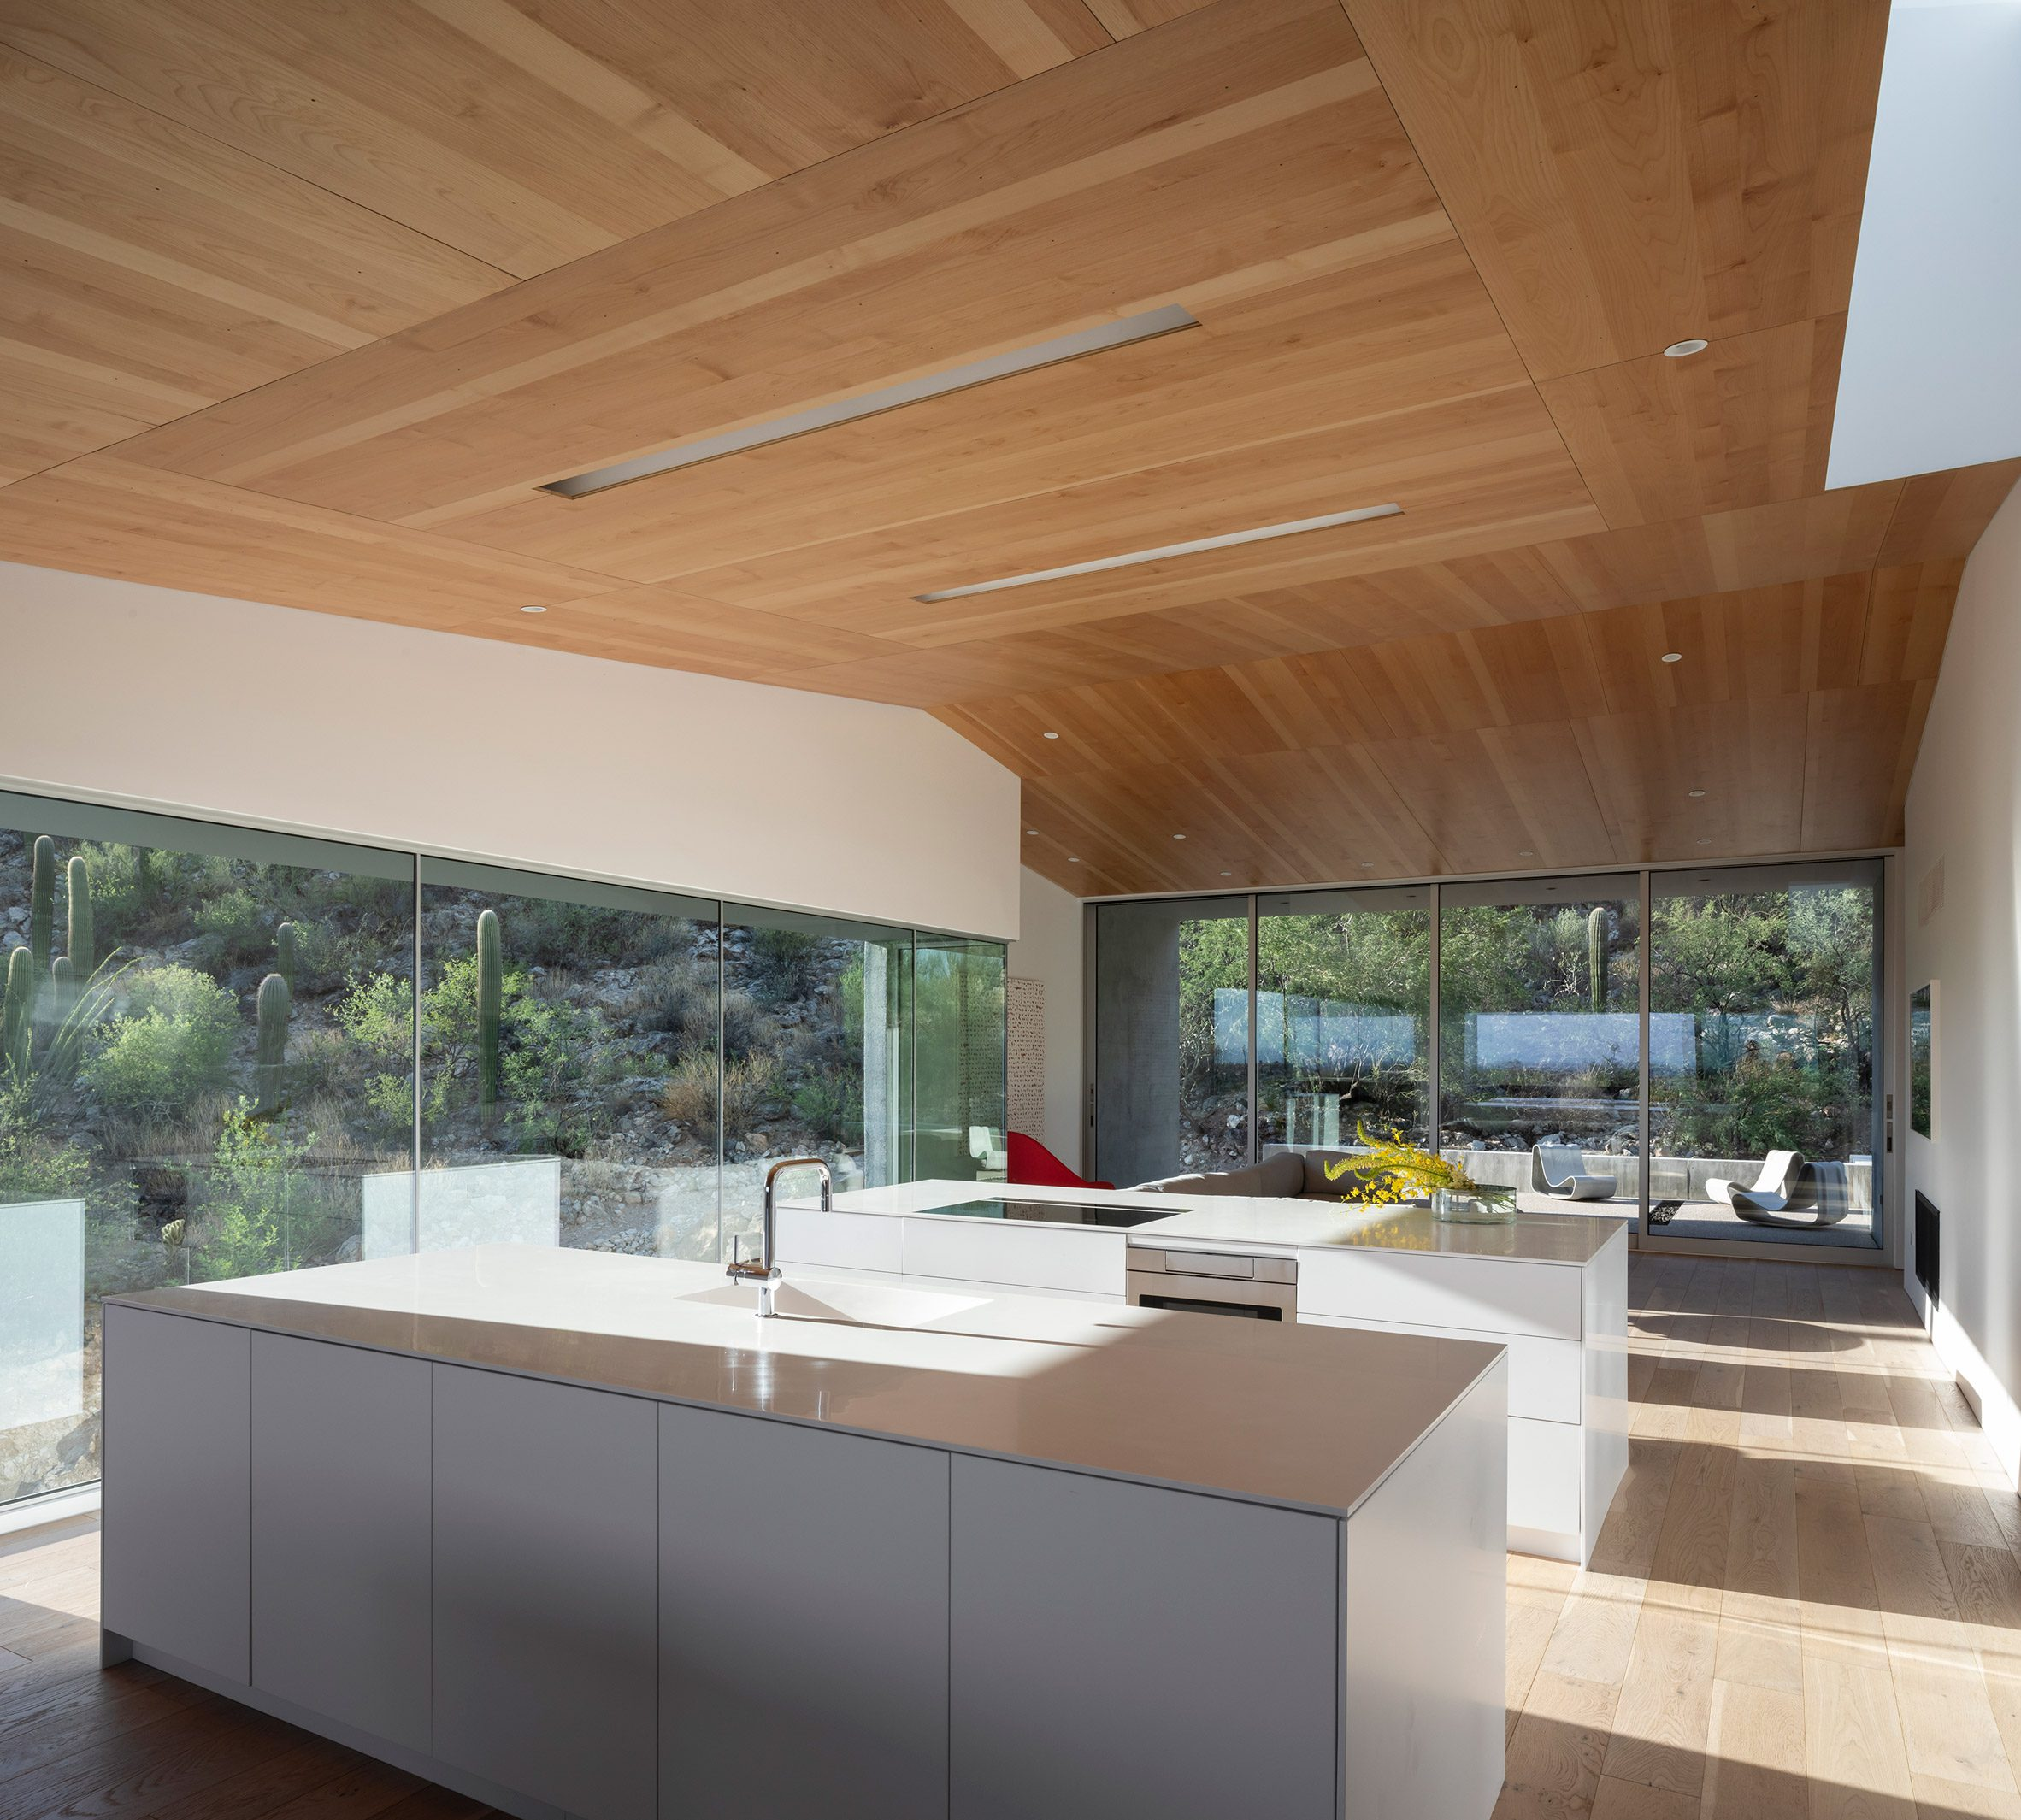 Wooden ceilings in the kitchen by HK Associates